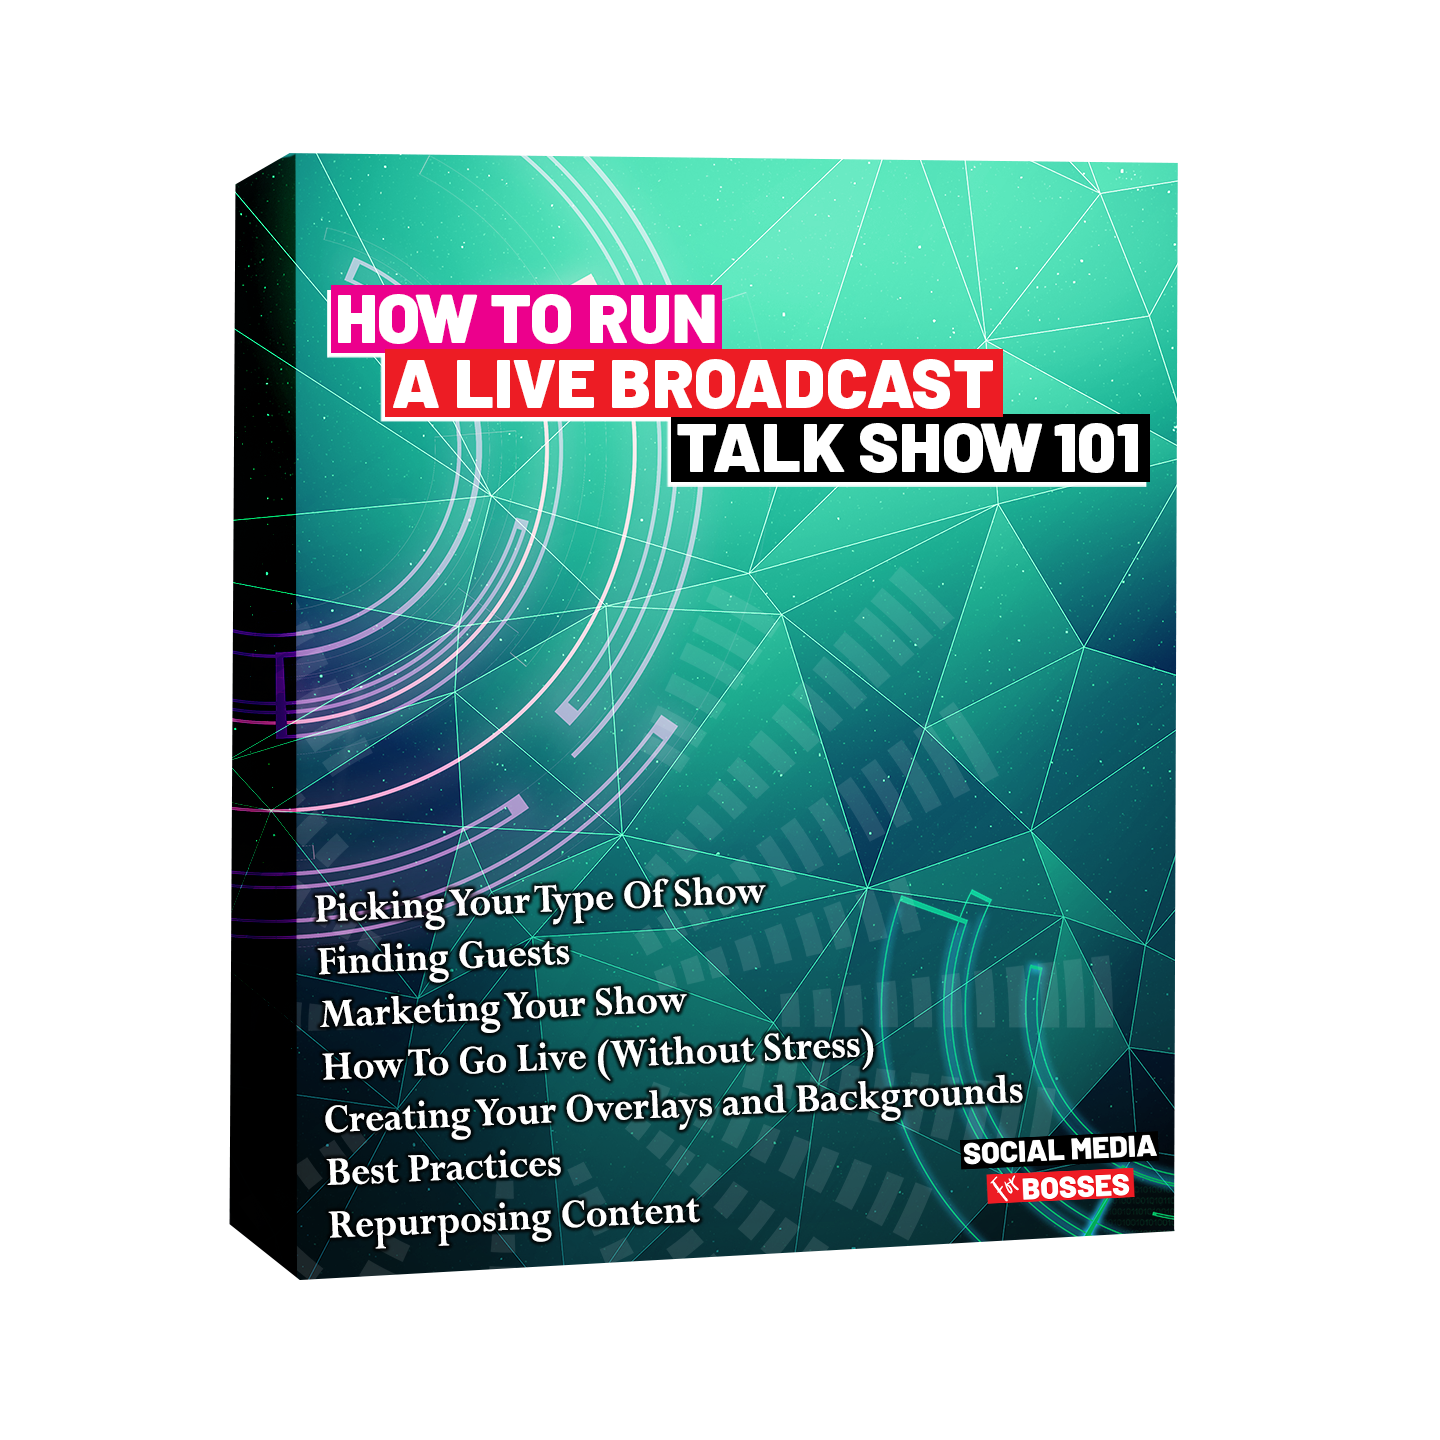 How To Run A Live Broadcast Talk Show box